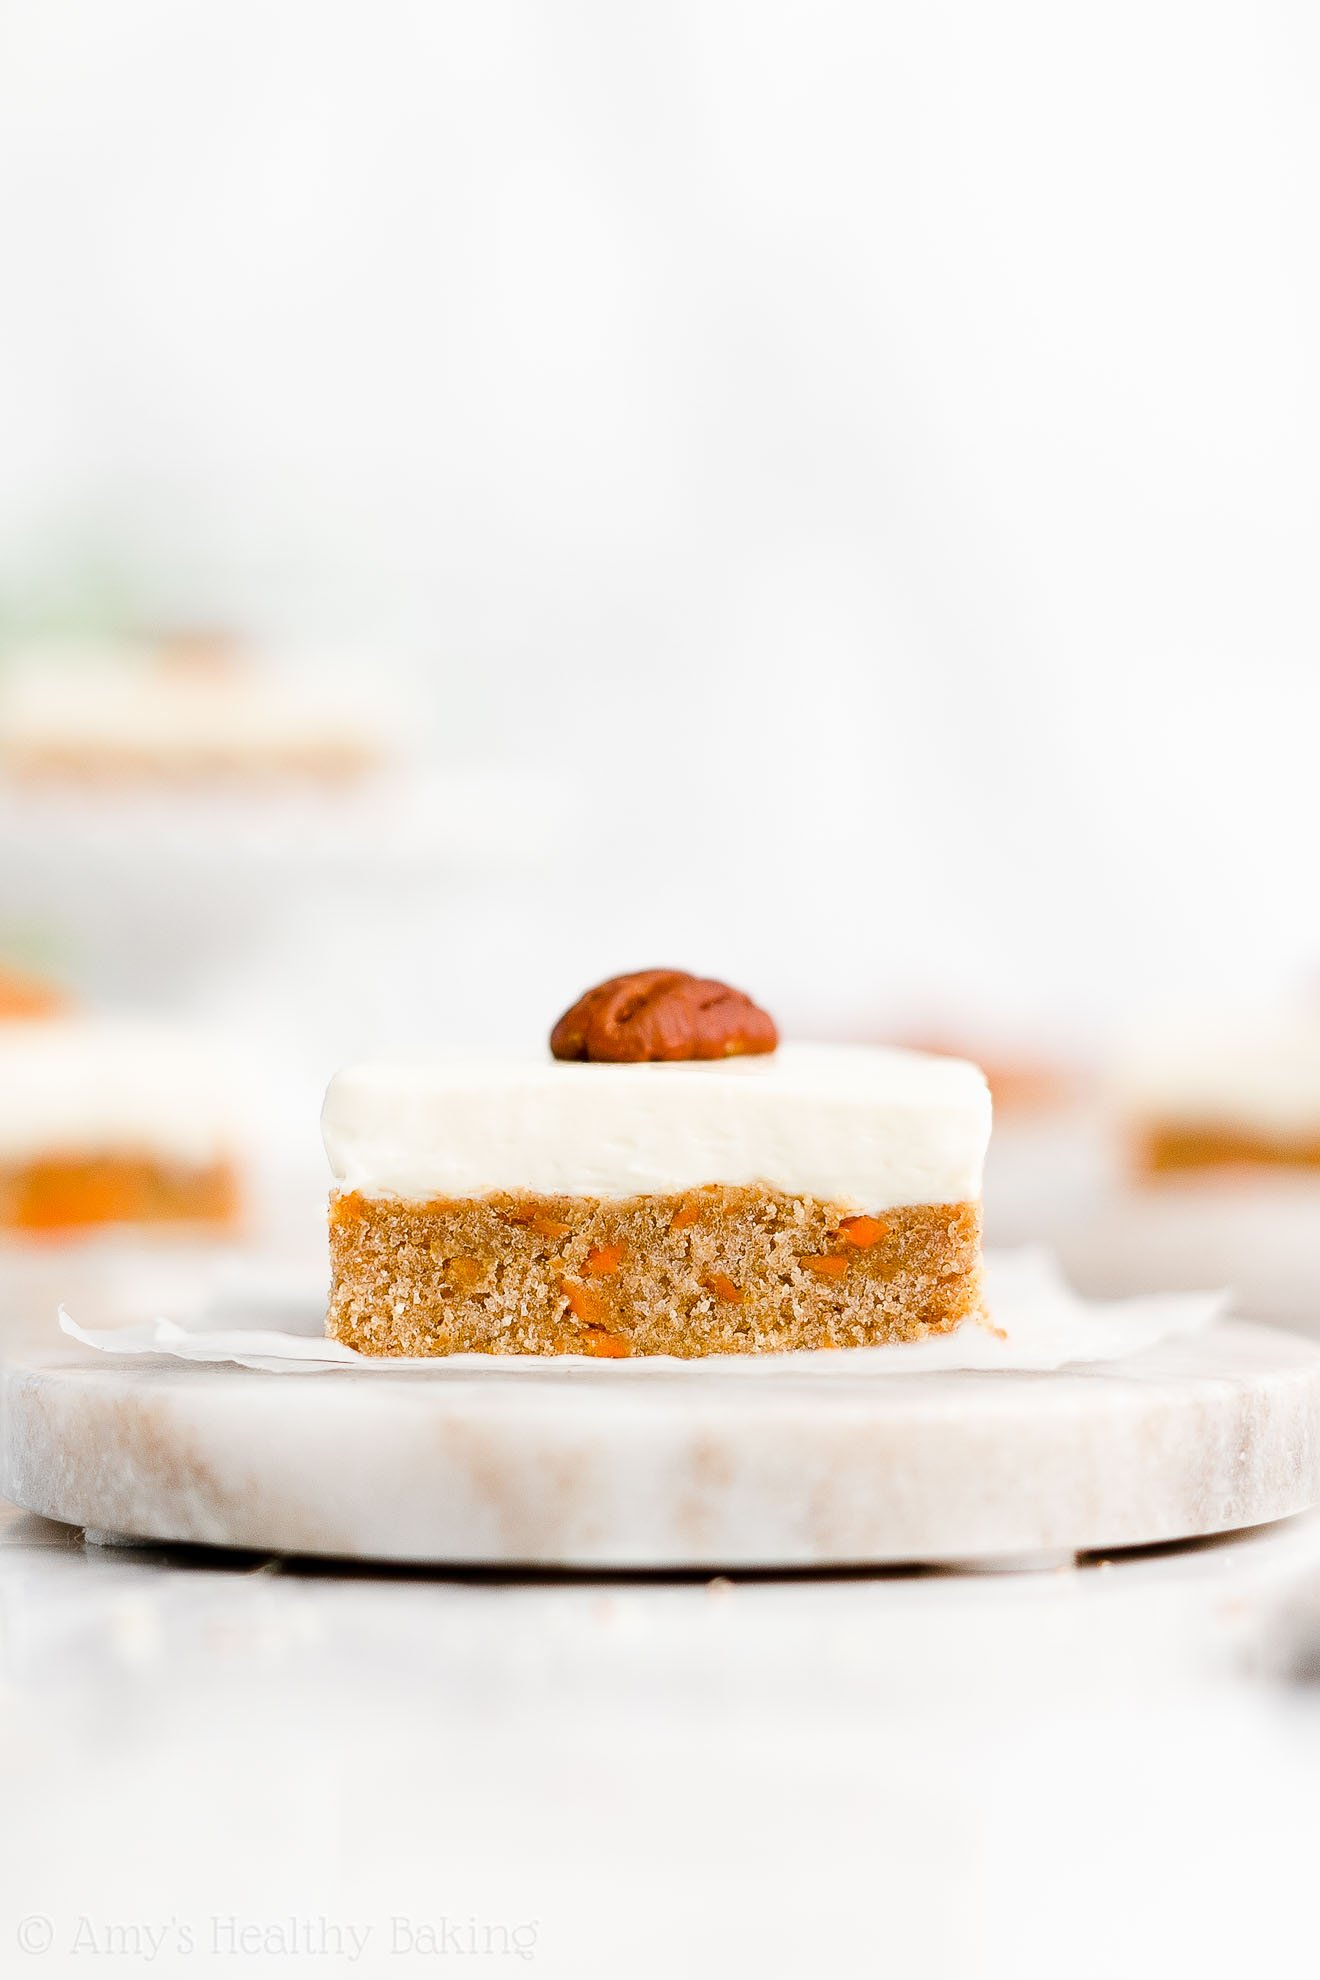 Easy Healthy Clean Eating Low Calorie Low Sugar Carrot Cake Cookie Bars